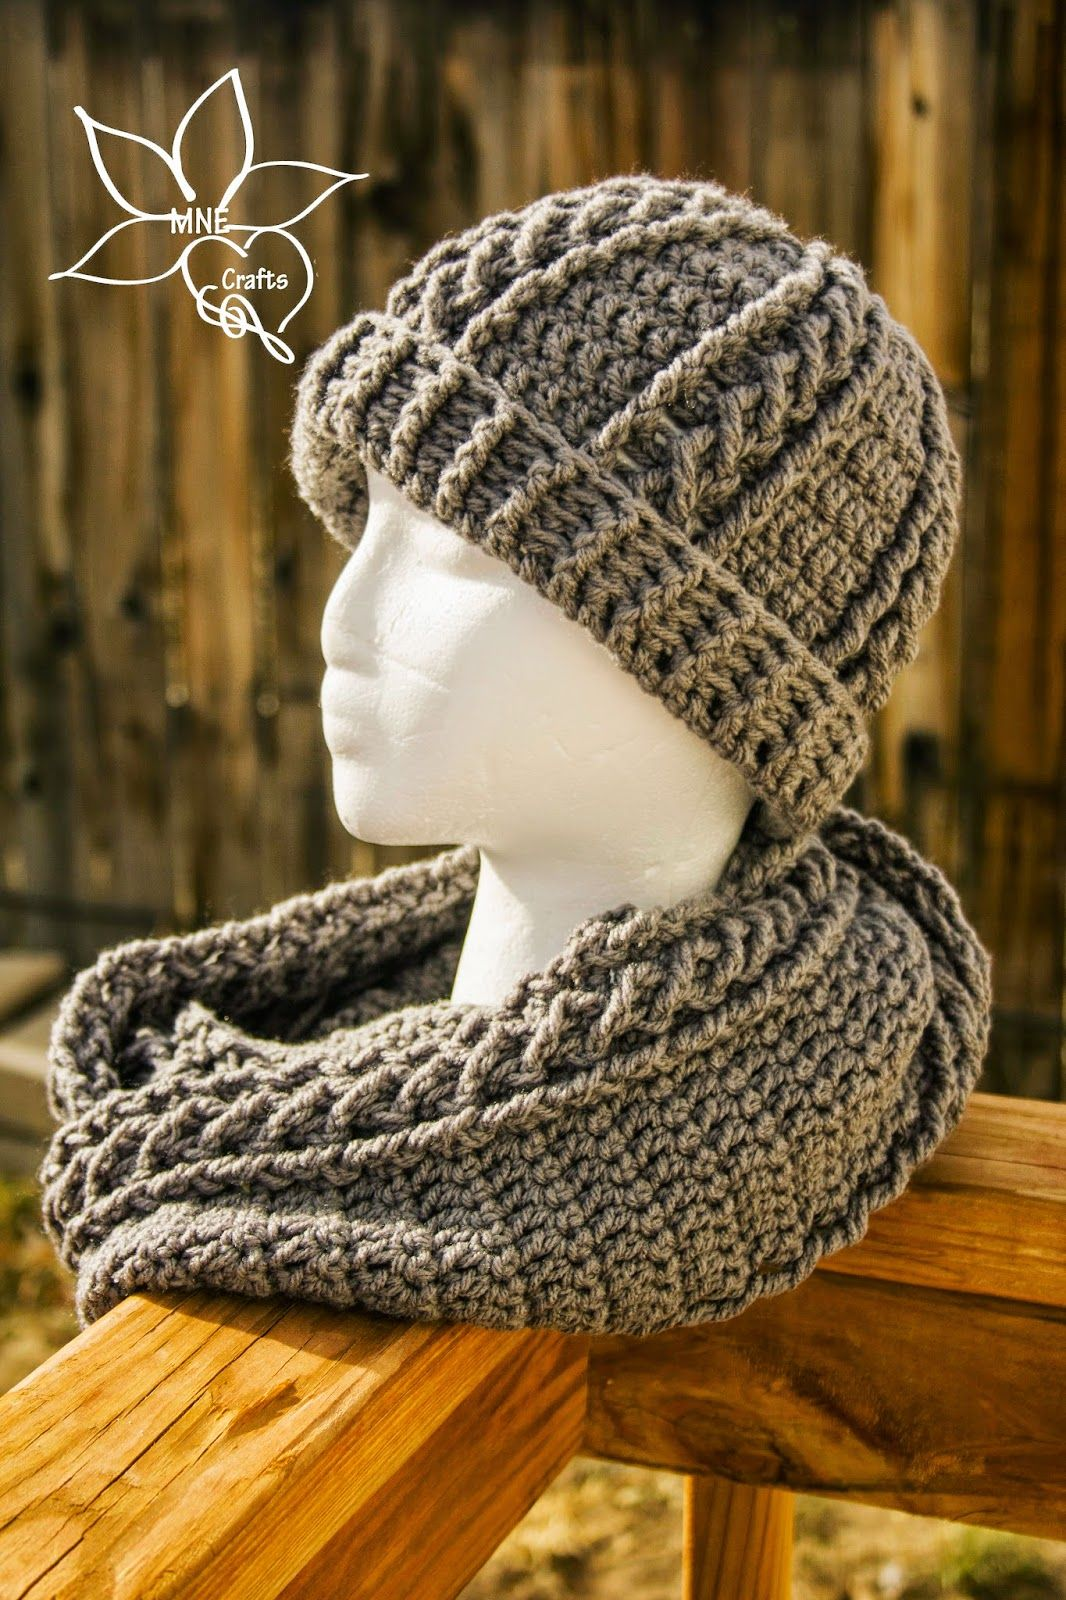 Free pattern mne crafts braids cables beanie cowl set free pattern mne crafts braids cables beanie cowl set bankloansurffo Image collections